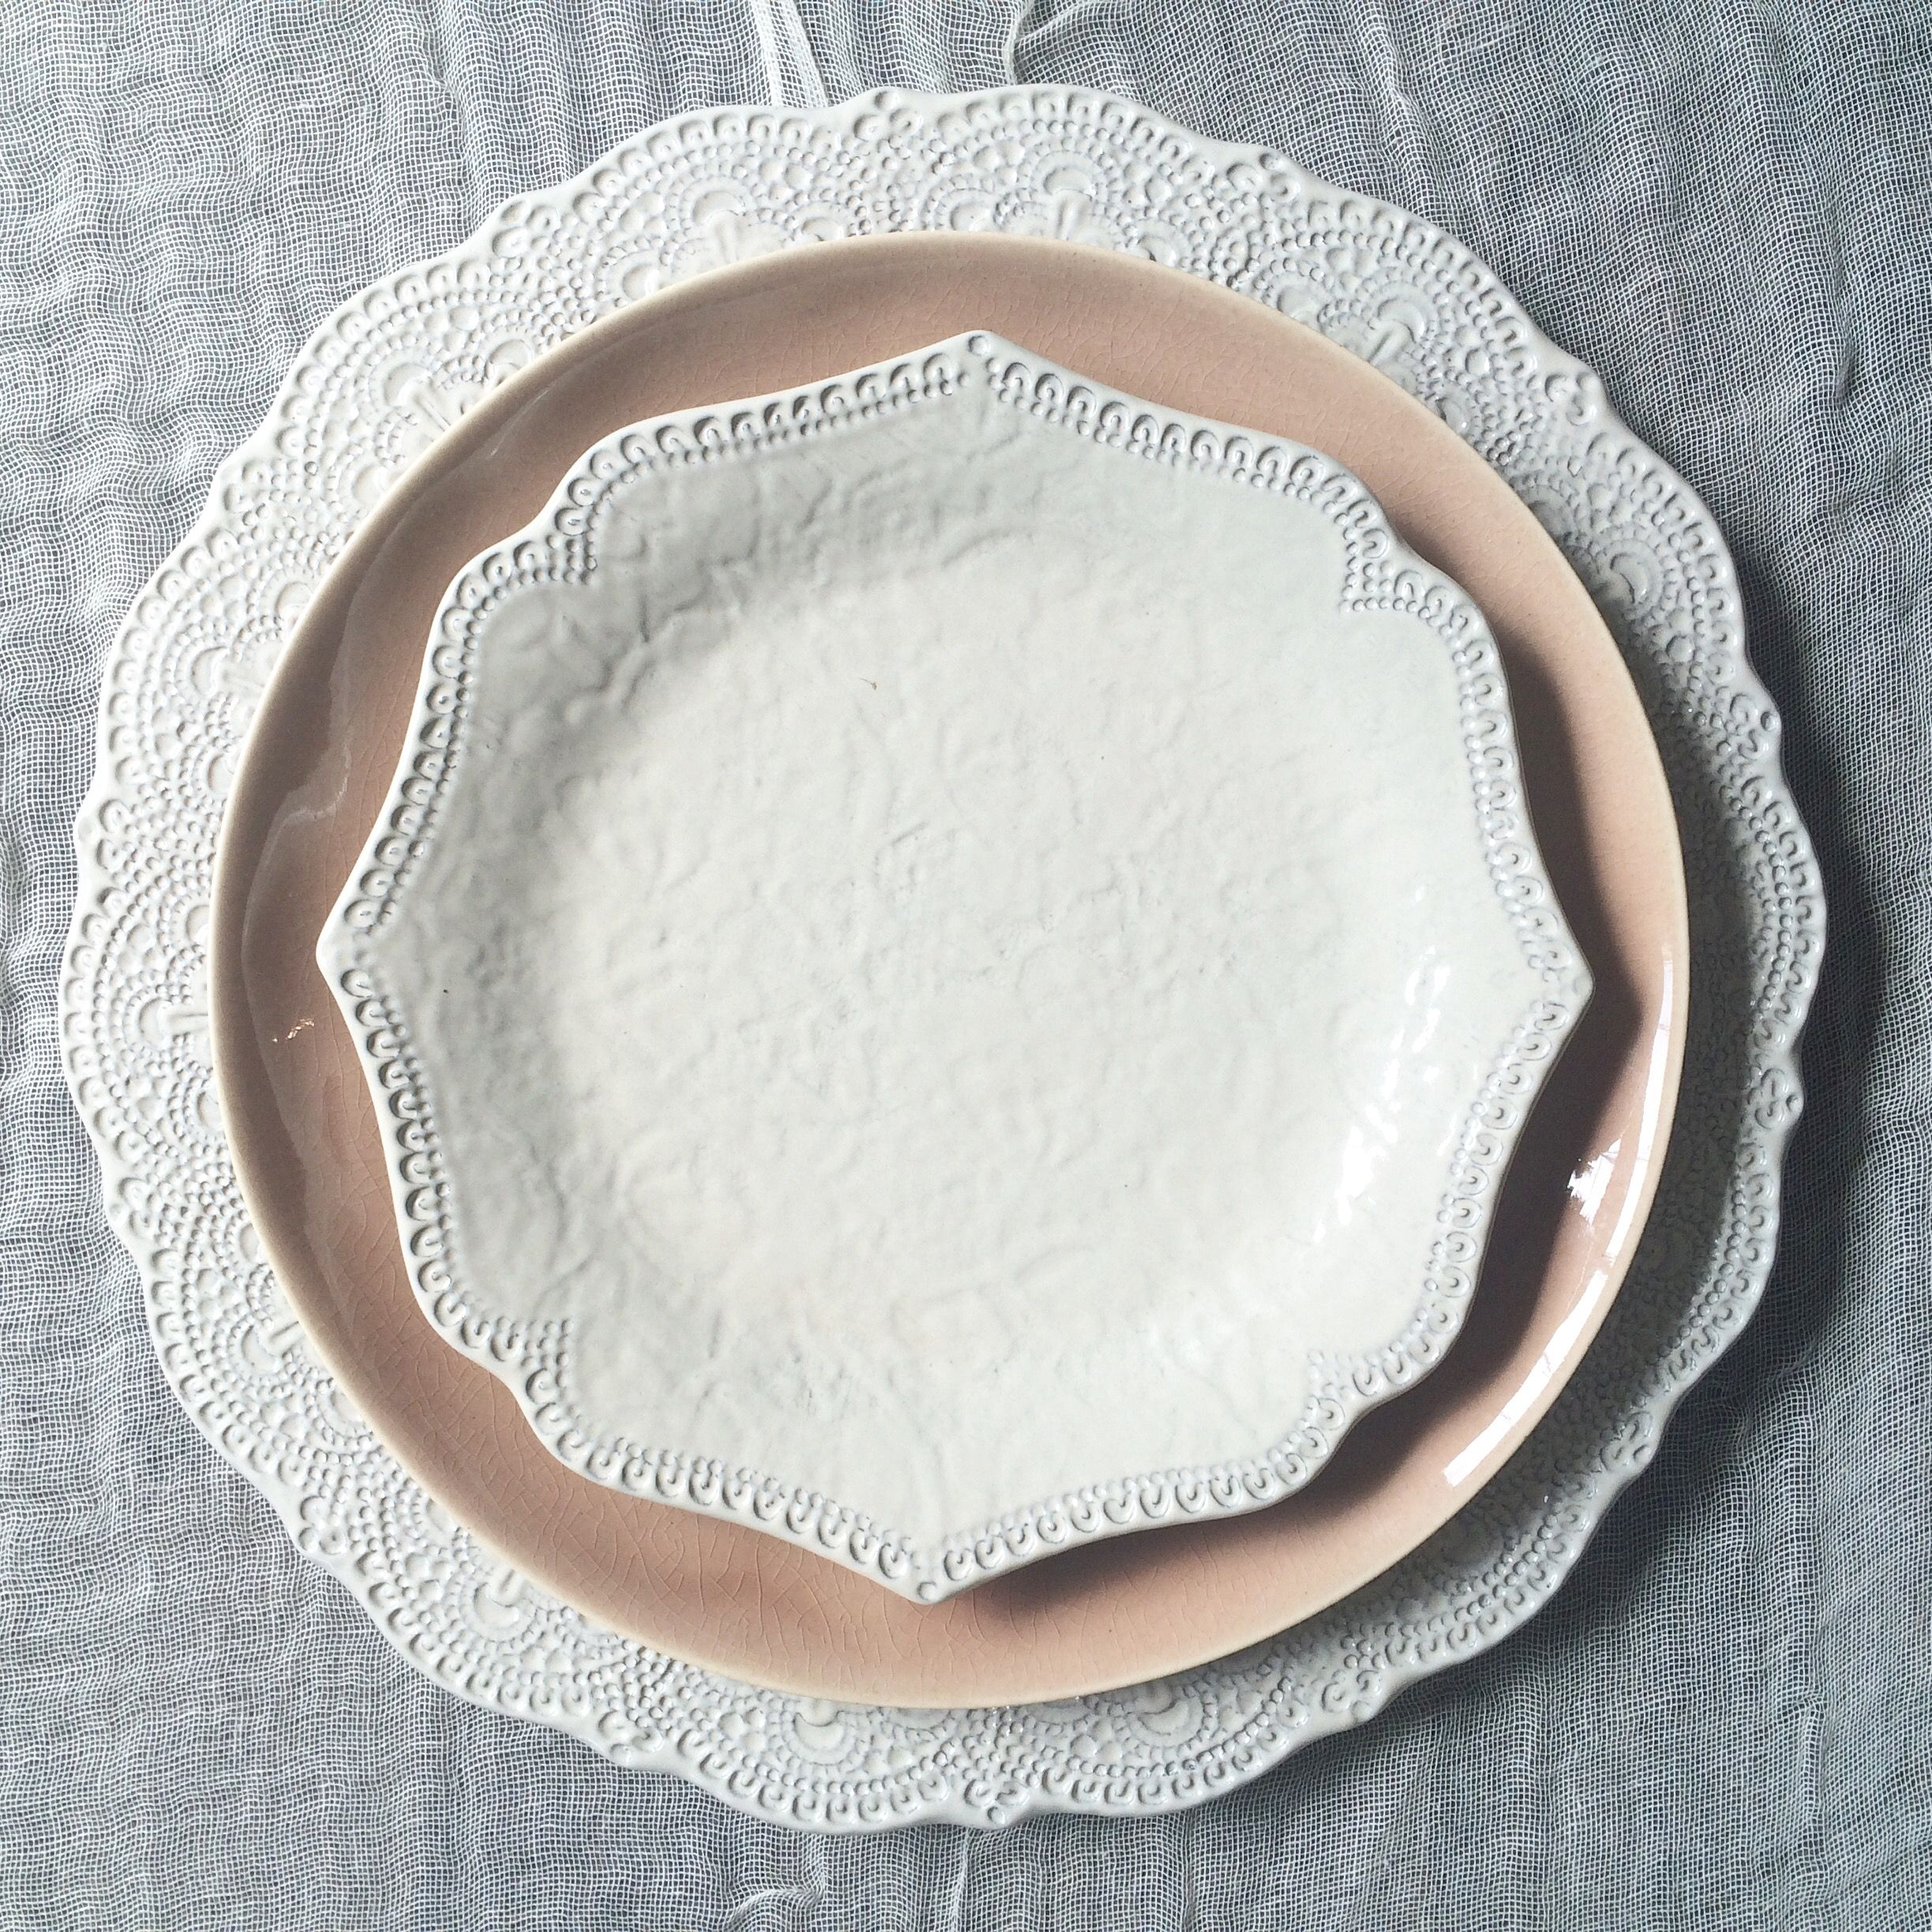 the ARK collection - Amalfi Lace charger / sahara rose dinner / amalfi scalloped salad & the ARK collection - Amalfi Lace charger / sahara rose dinner ...